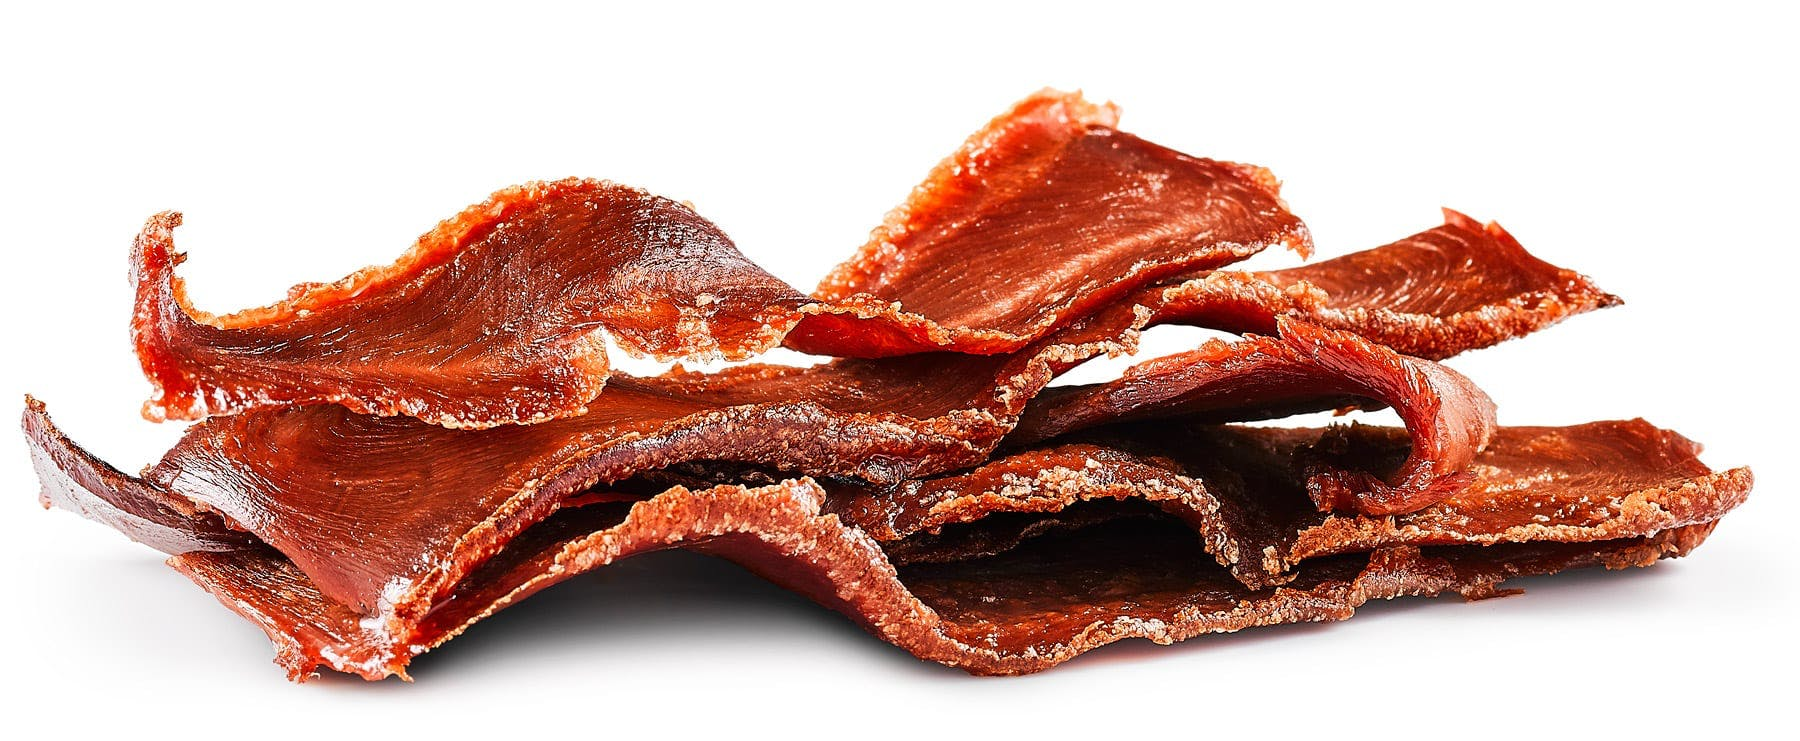 crispy vegan bacon rashers